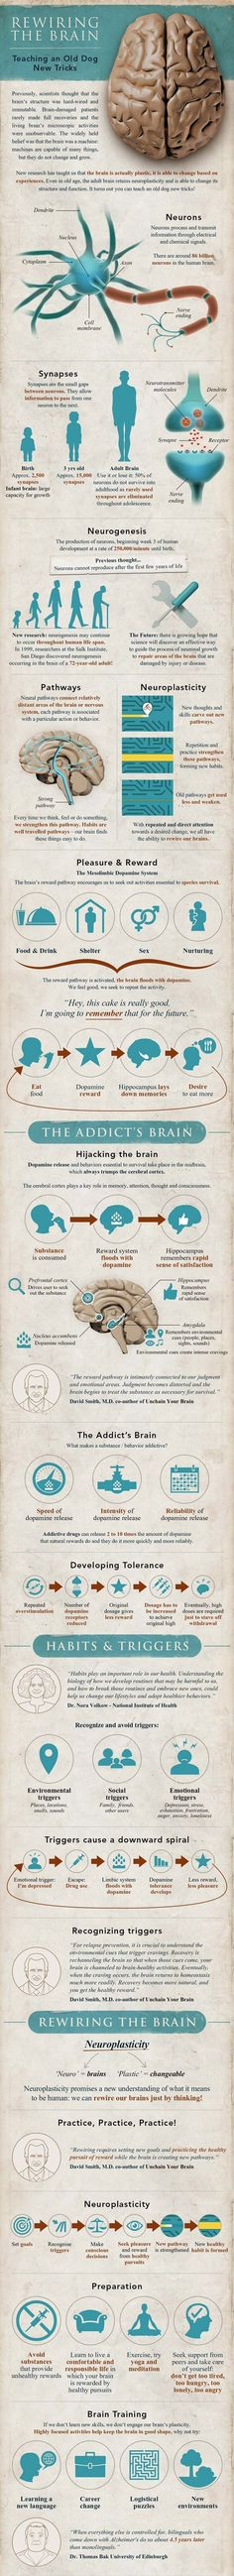 This Nifty Infographic is a Great Introduction to Neuroplasticity and Cognitive Therapy ~ ~ Did you know you can rewire your brain? Neuroscientific breakthroughs are revealing fascinating new truths about how we can control our brains to create new positive neuropathways